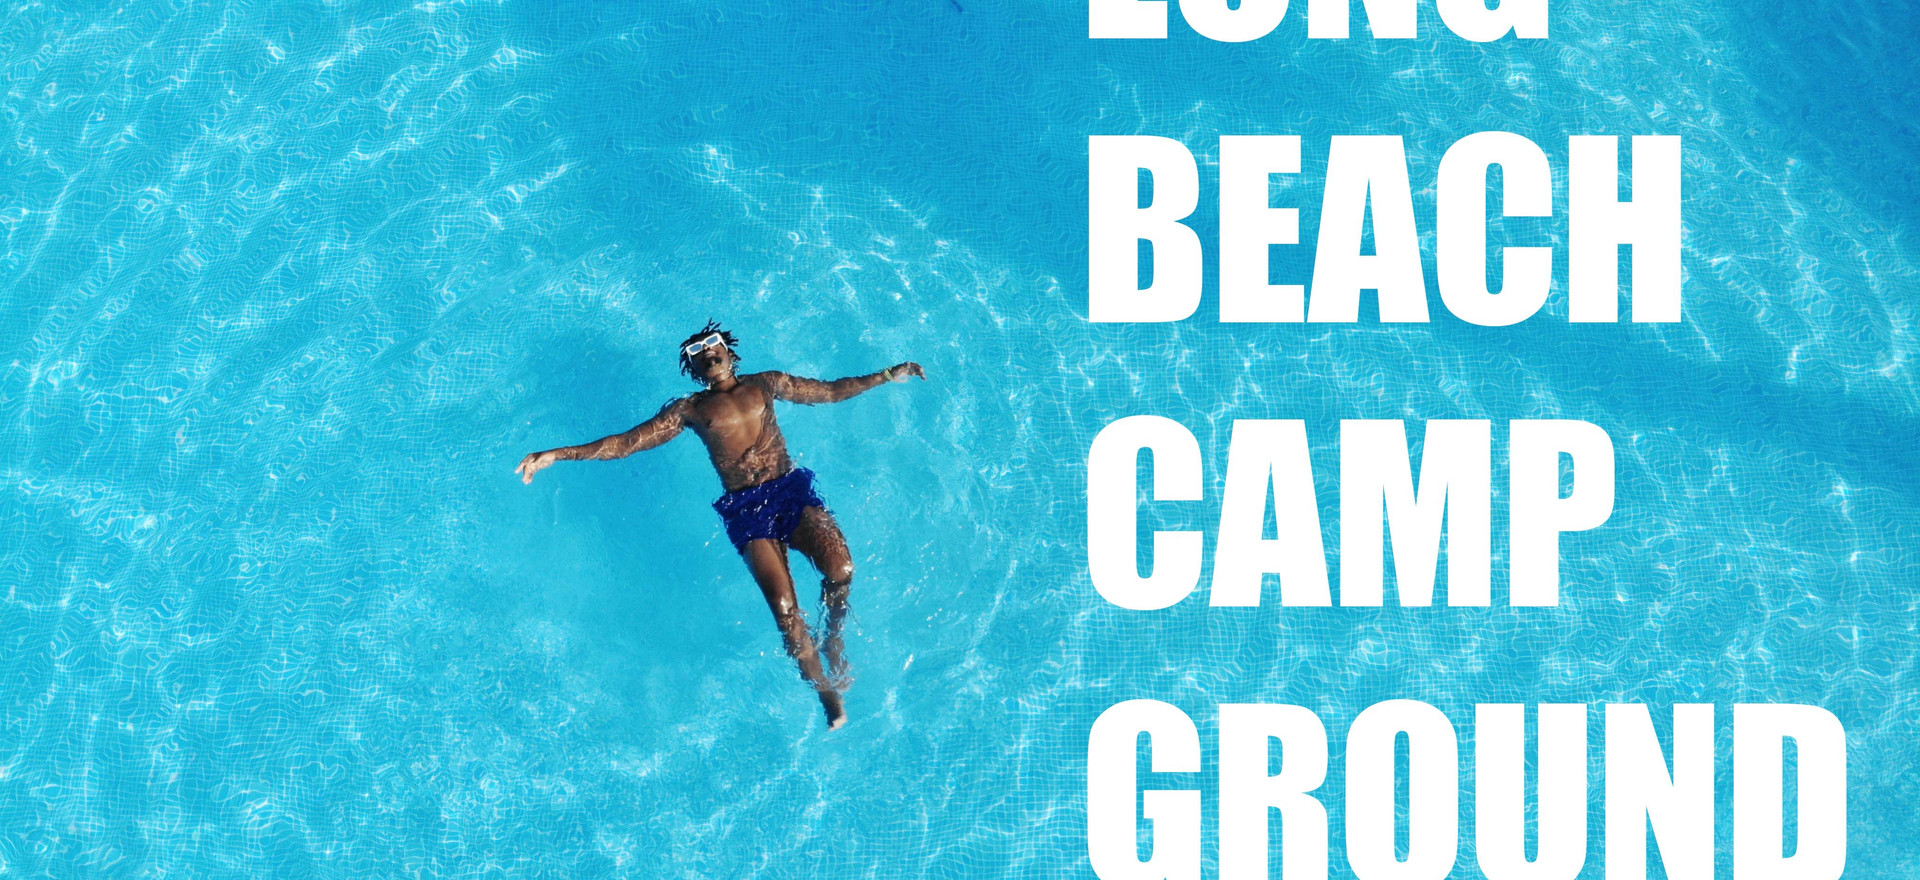 LongBeach Campground Re-launch Campaign